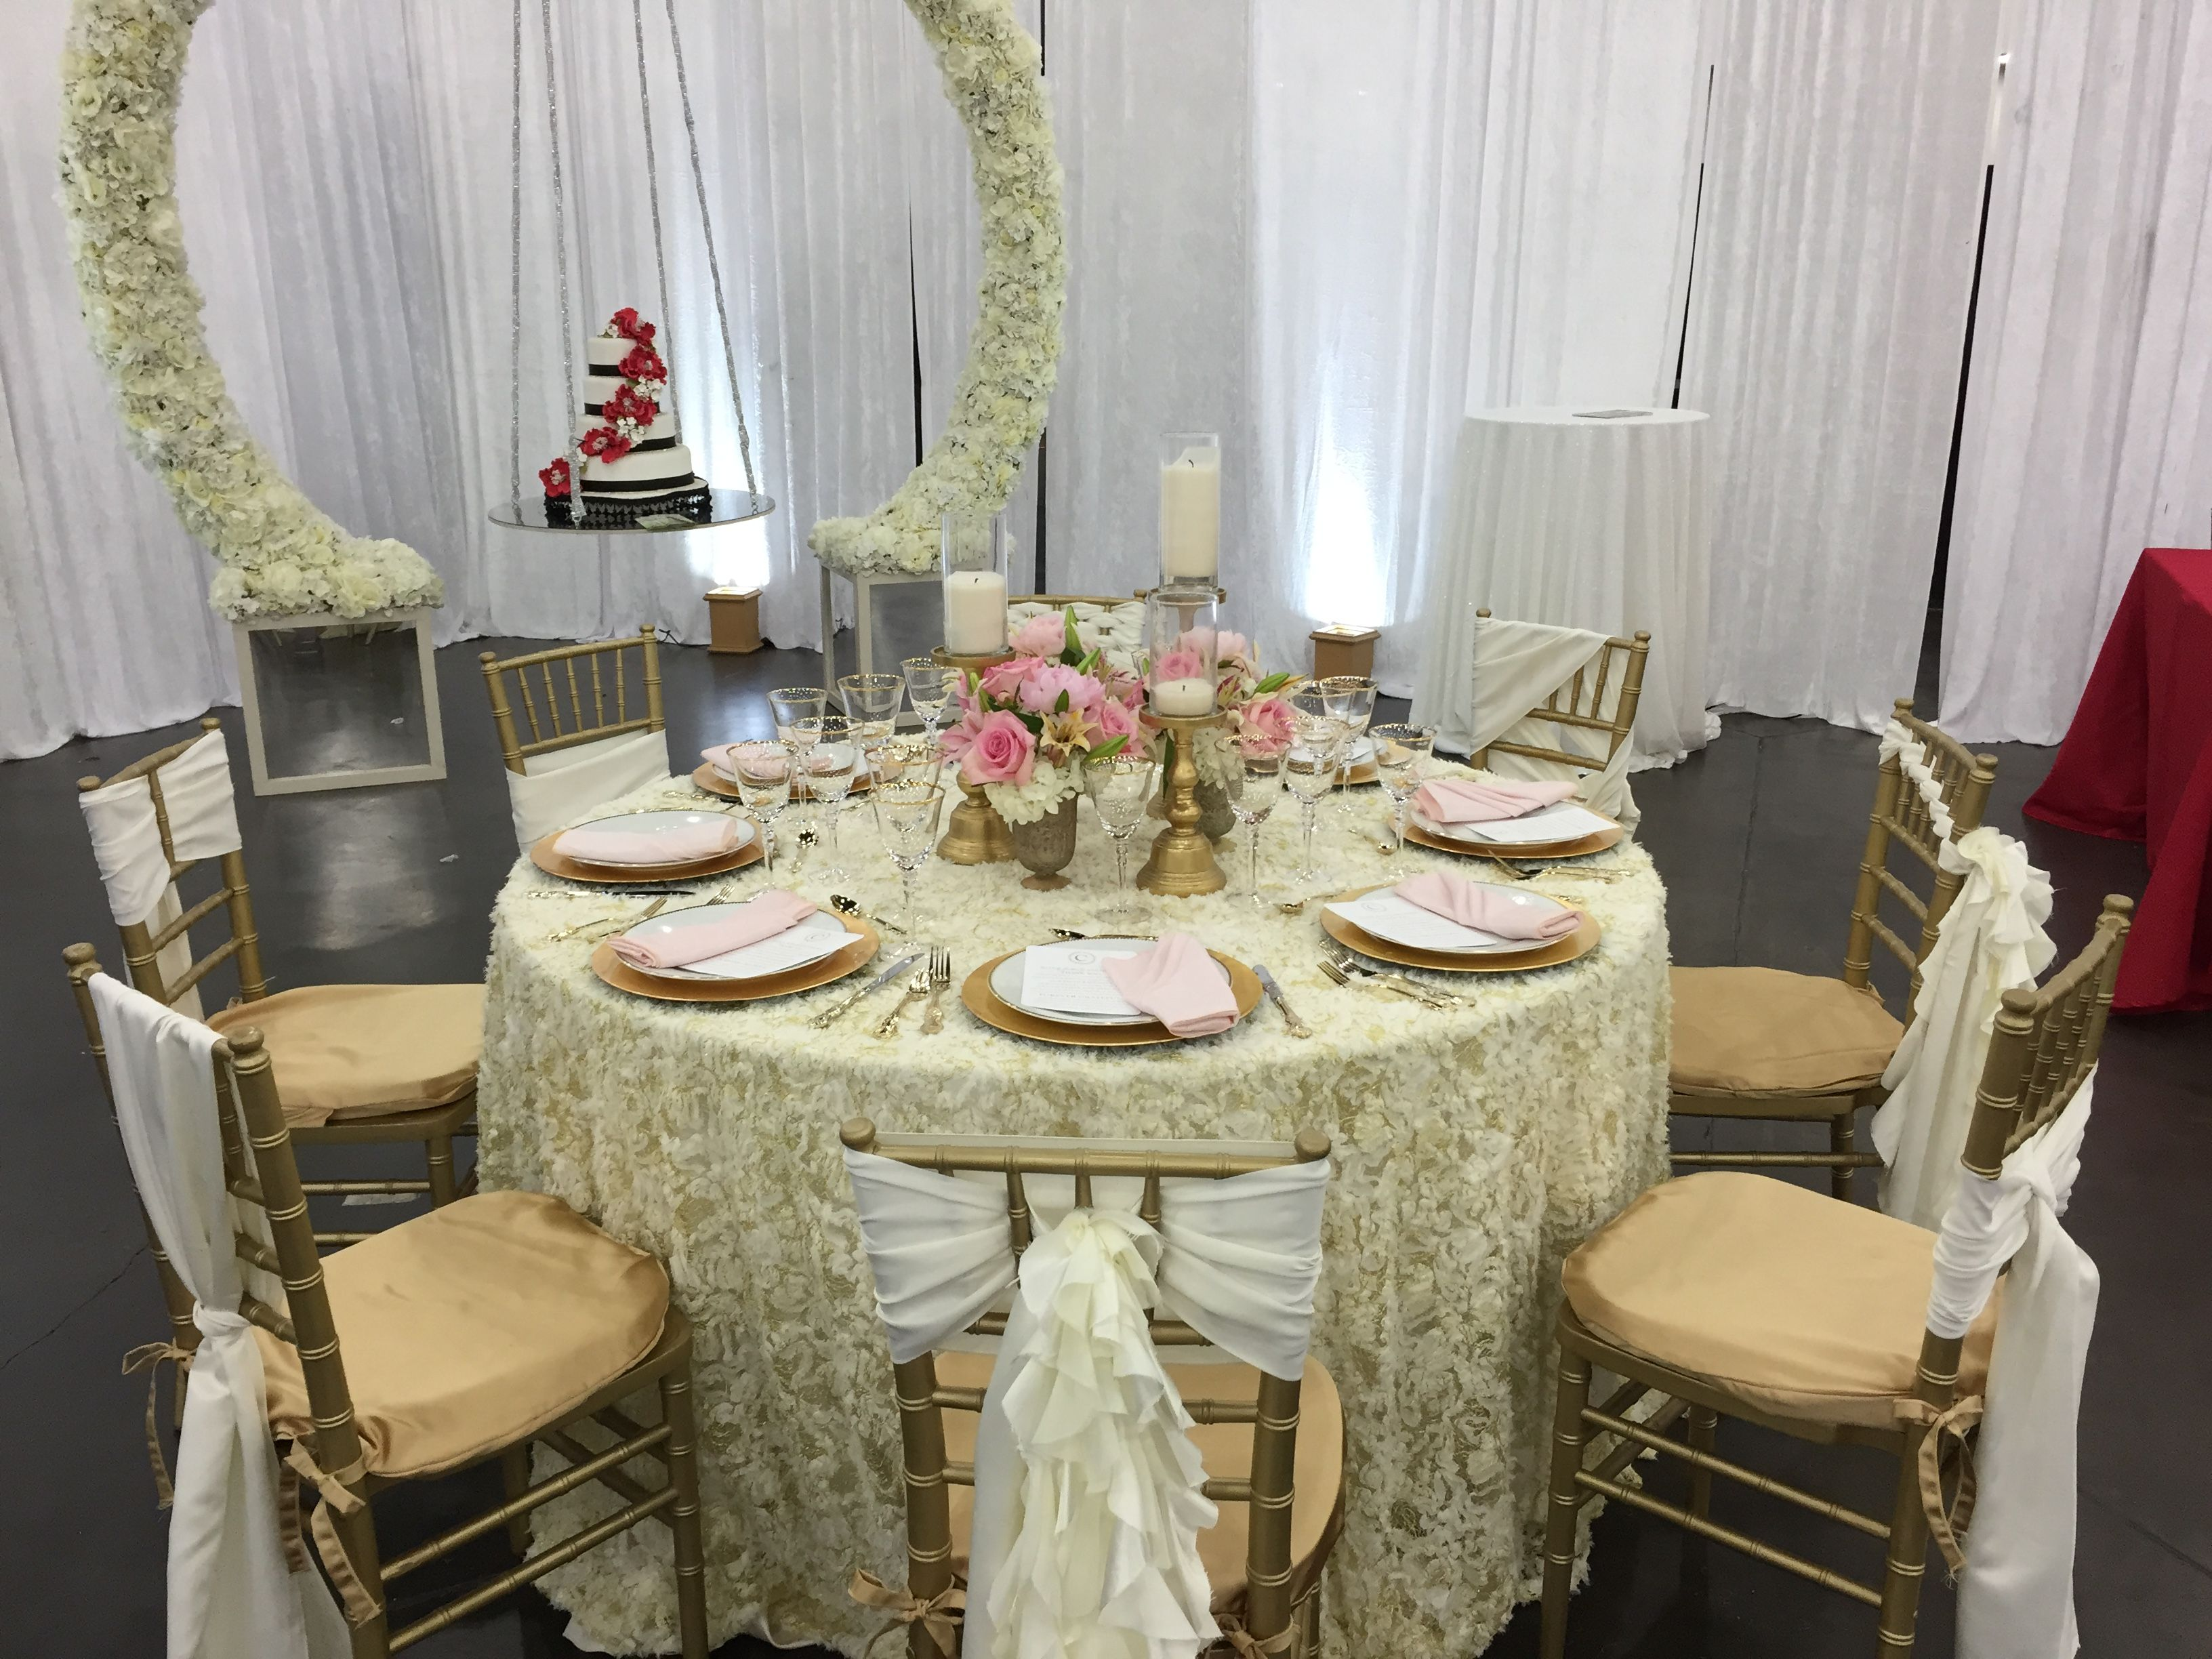 chiavari chairs rental houston swing chair cushions only ivory blissful chiffon sashes in different ties blush florals gold chivaries bridal extravaganza texas house of hough specialty linen company